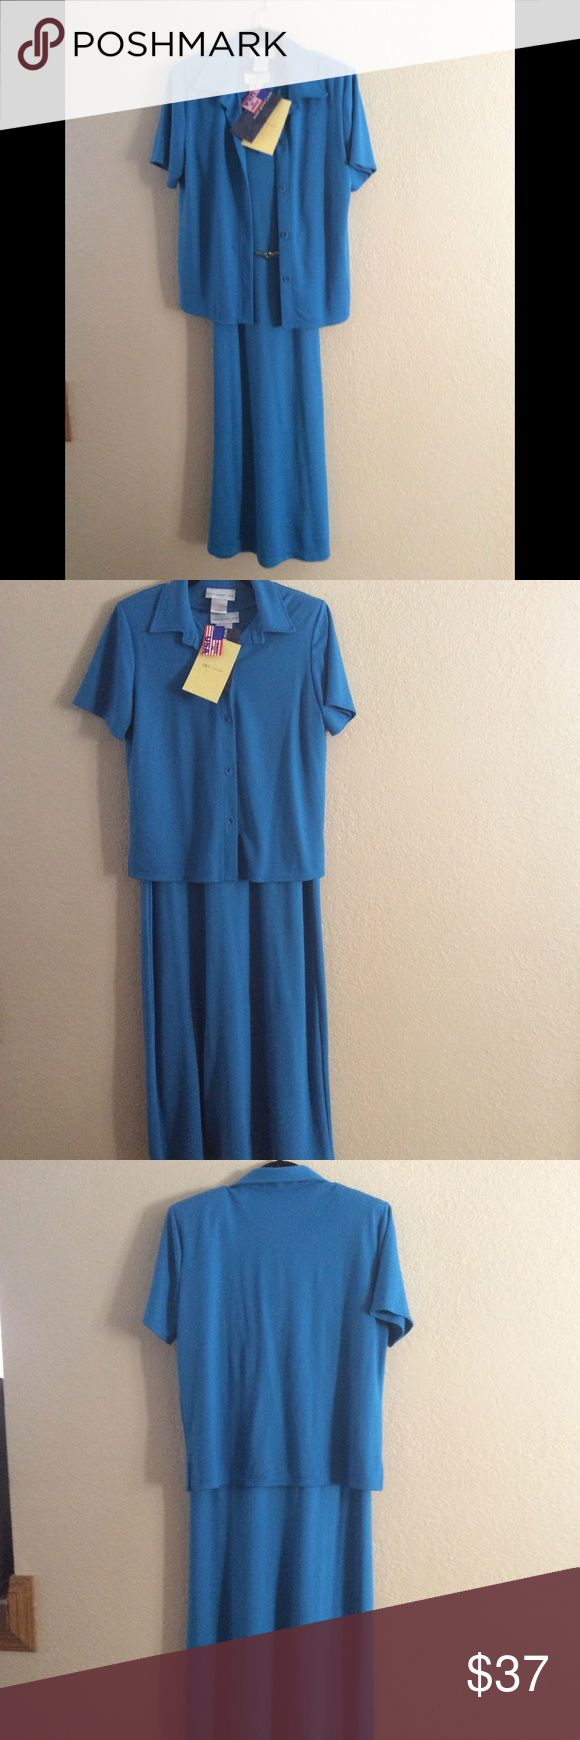 Susan Graver -  Dress w/Matching Short Sleeve Top NWT - Susan Graver Dress Set - Pretty Blue, very soft and comfortable fabric, Set has Short Sleeves, Collar, and matching blue mother of pearl look buttons. Dress is sleeveless and can be worn with or without matching Top. Add a belt for a different look as shown. (Belt not included) Just a change it up idea 💐Great for work or any occasion. NEW with tags! 67% Polyester, 33% Rayon - Machine wash, tumblr dry low. Size Small 6-8 Susan Graver…